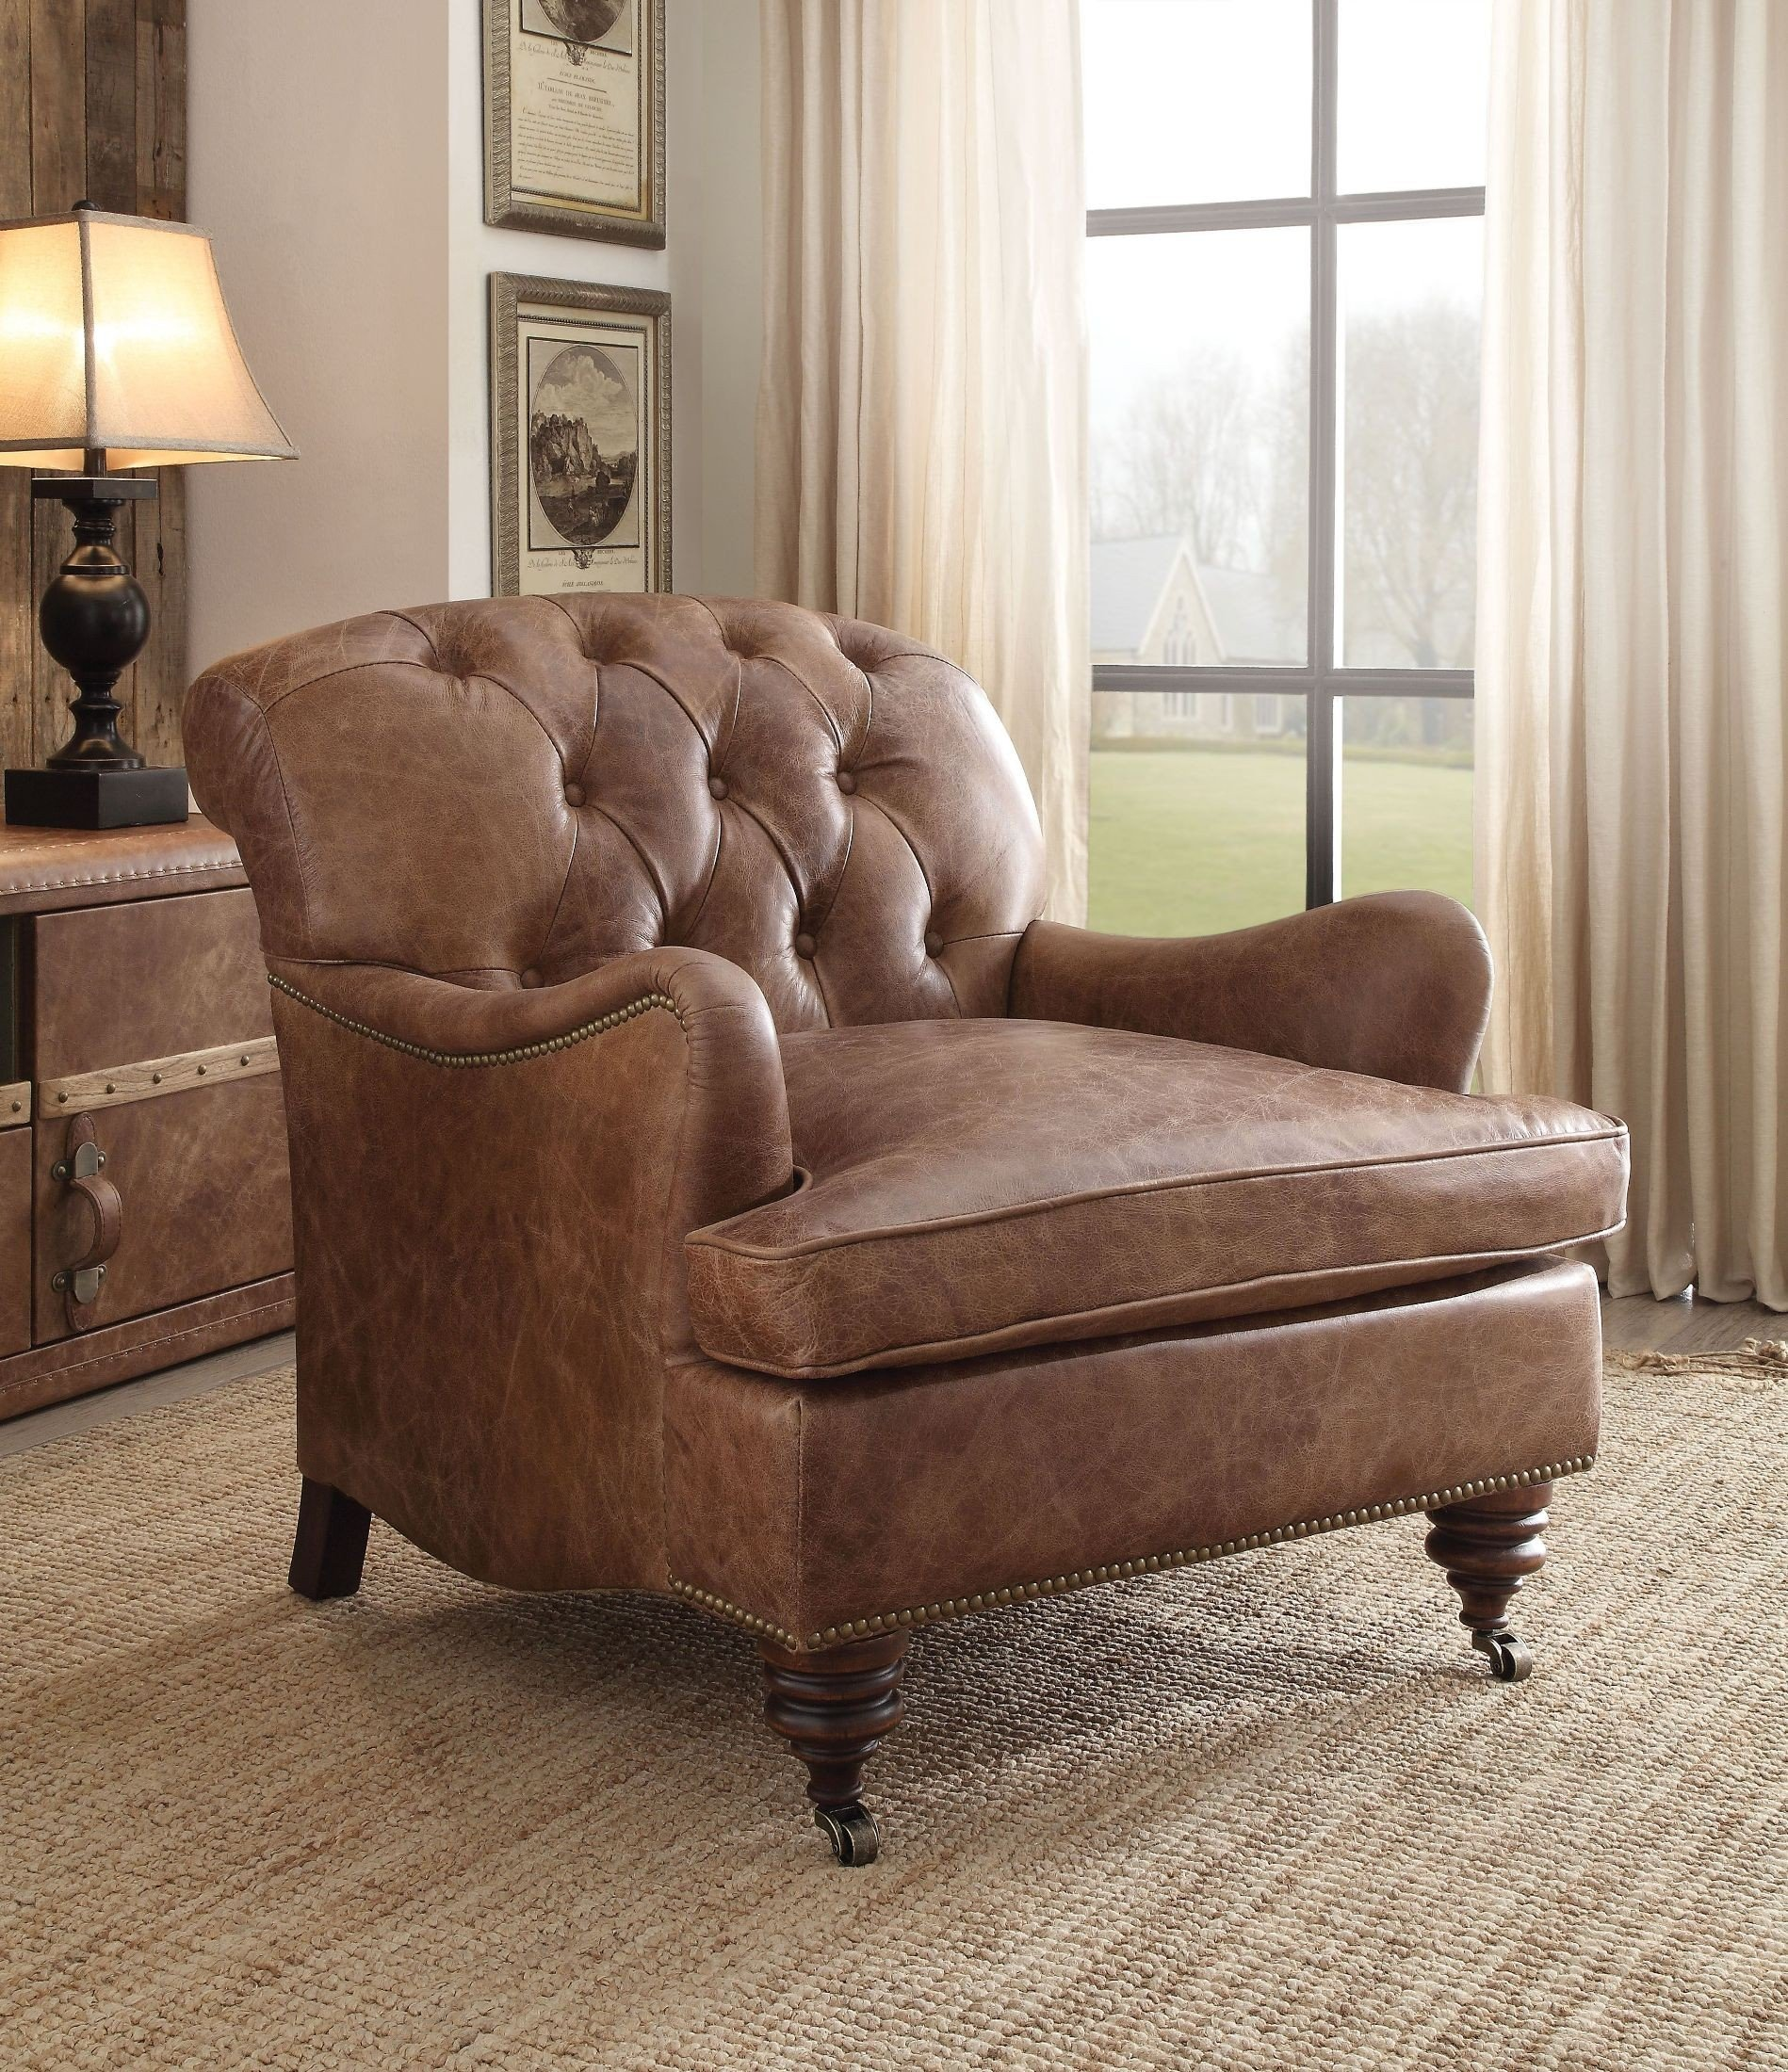 Durham Retro Brown Leather Tufted Accent Chair